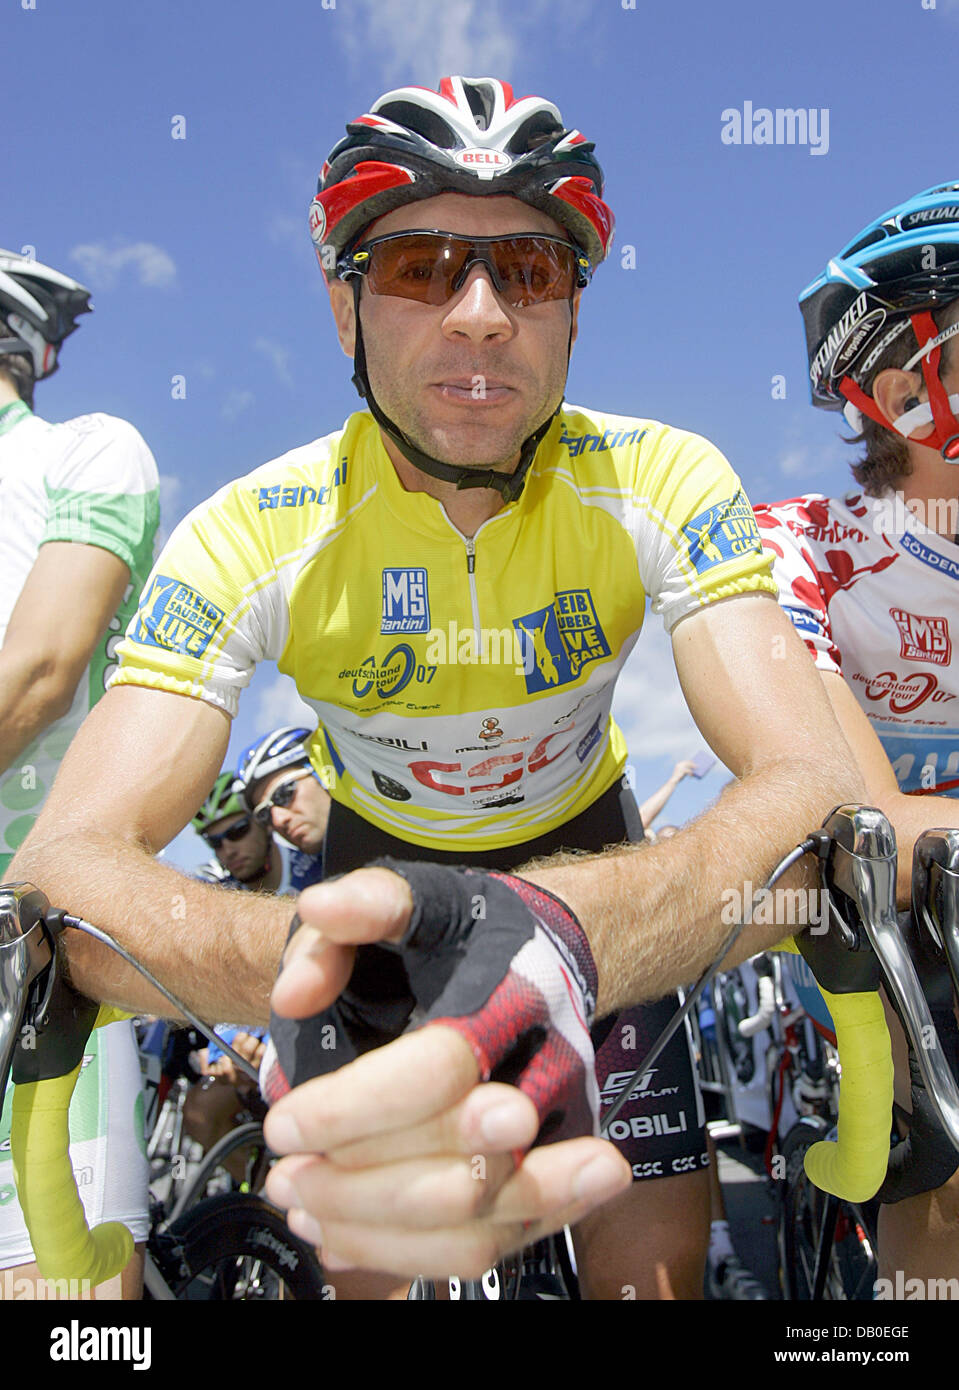 German cyclist Jens Voigt of the Team CSC who is wearing the yellow jersey  of the overall leader is pictured at the start of the sixth stage of the  Germany ... 7f9b1671b